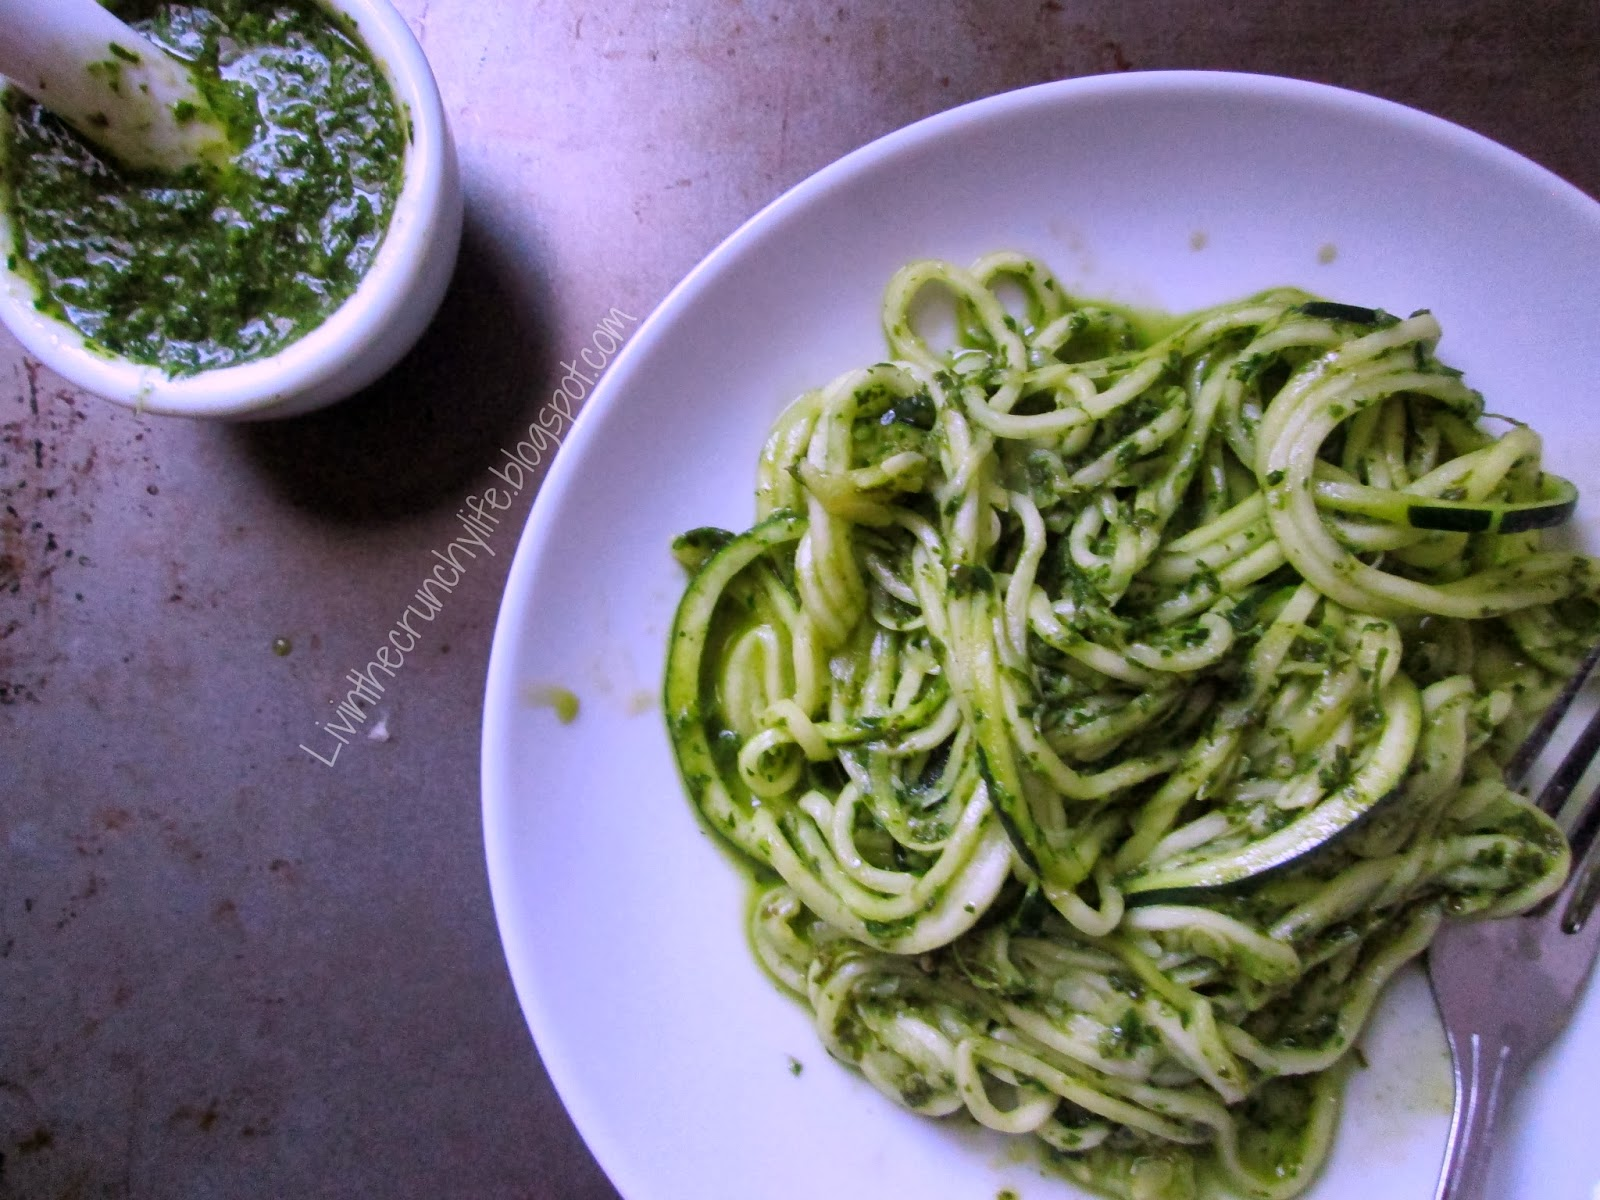 Carrot Top Pesto (nut-free) with Roasted Carrots | Livin' the Crunchy ...